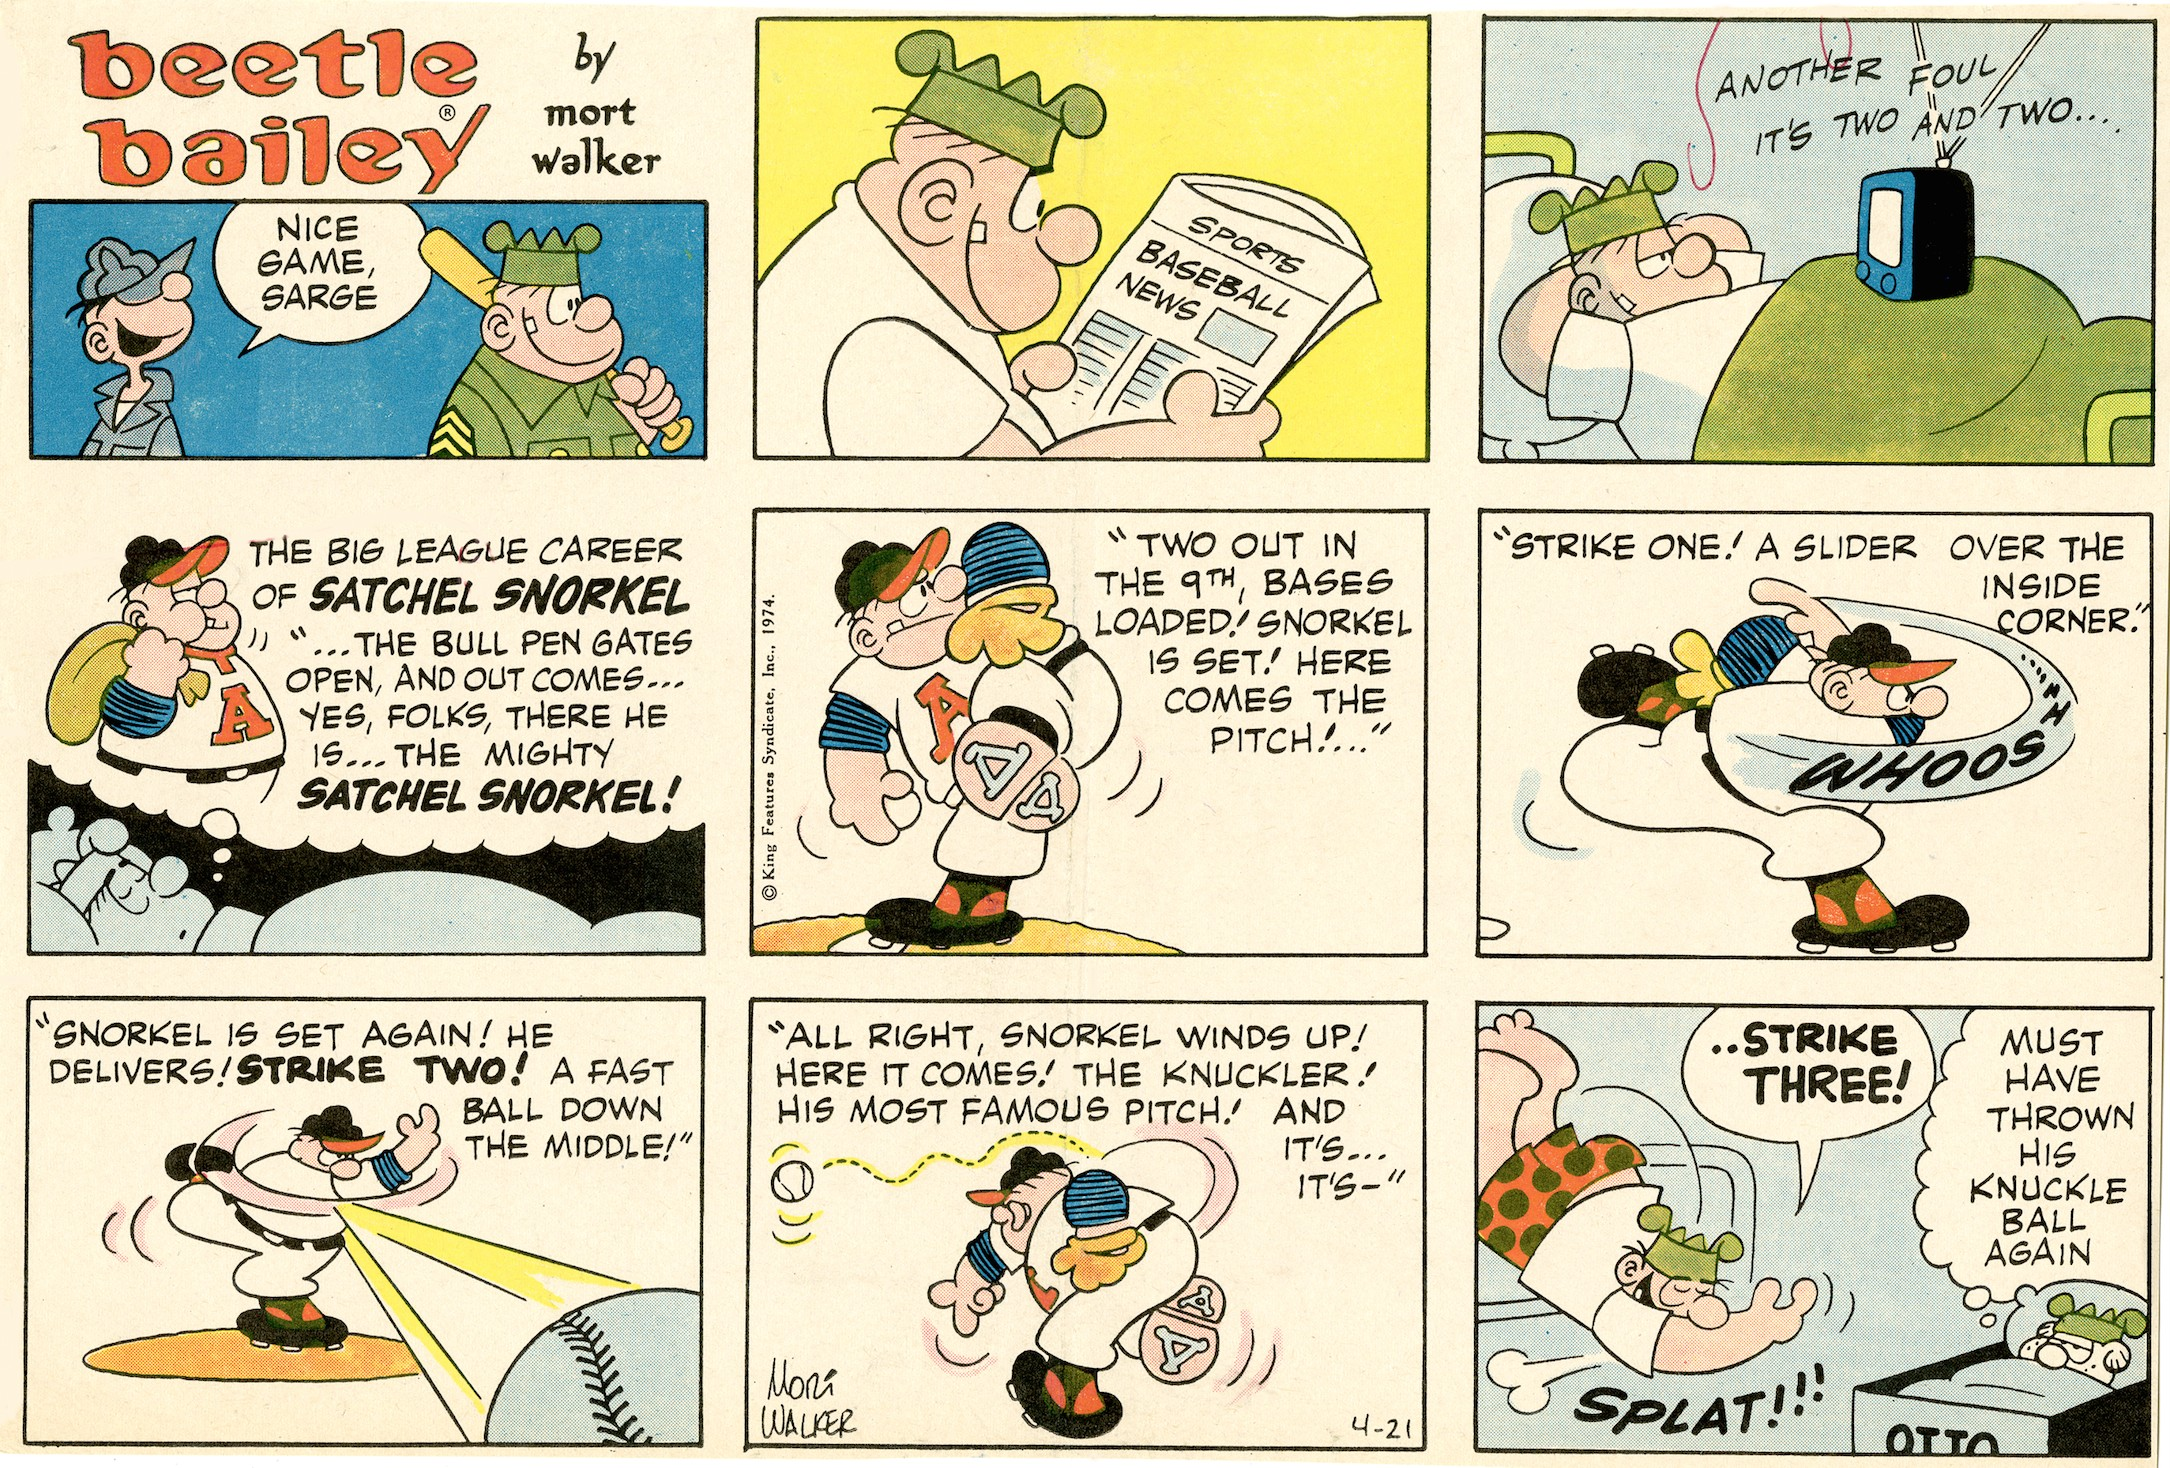 Beetle Bailey Sunday page, April 21, 1974.